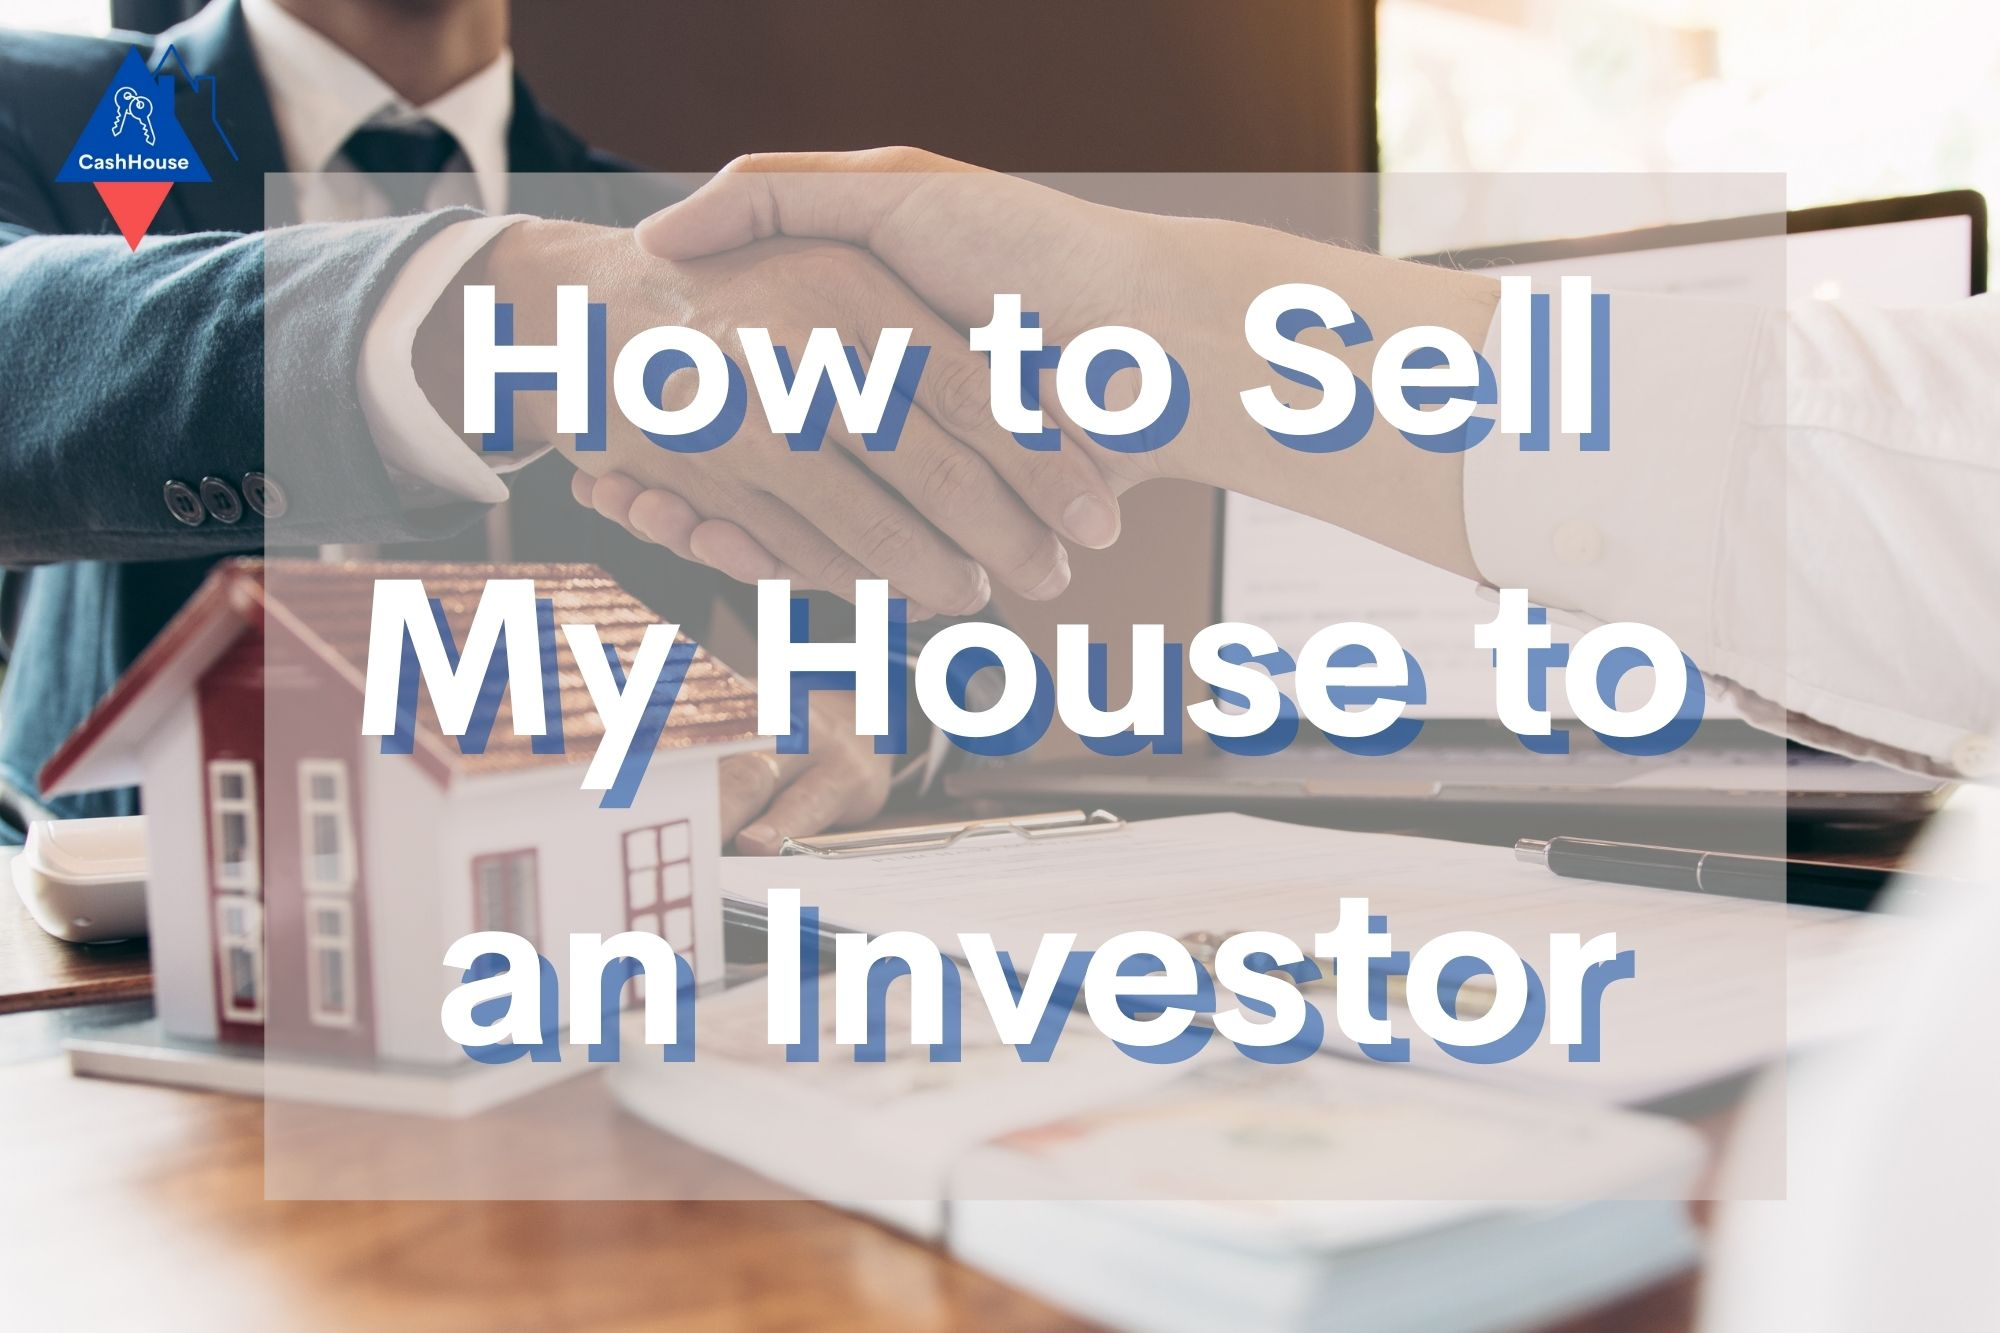 How do I sell my house to an investor?